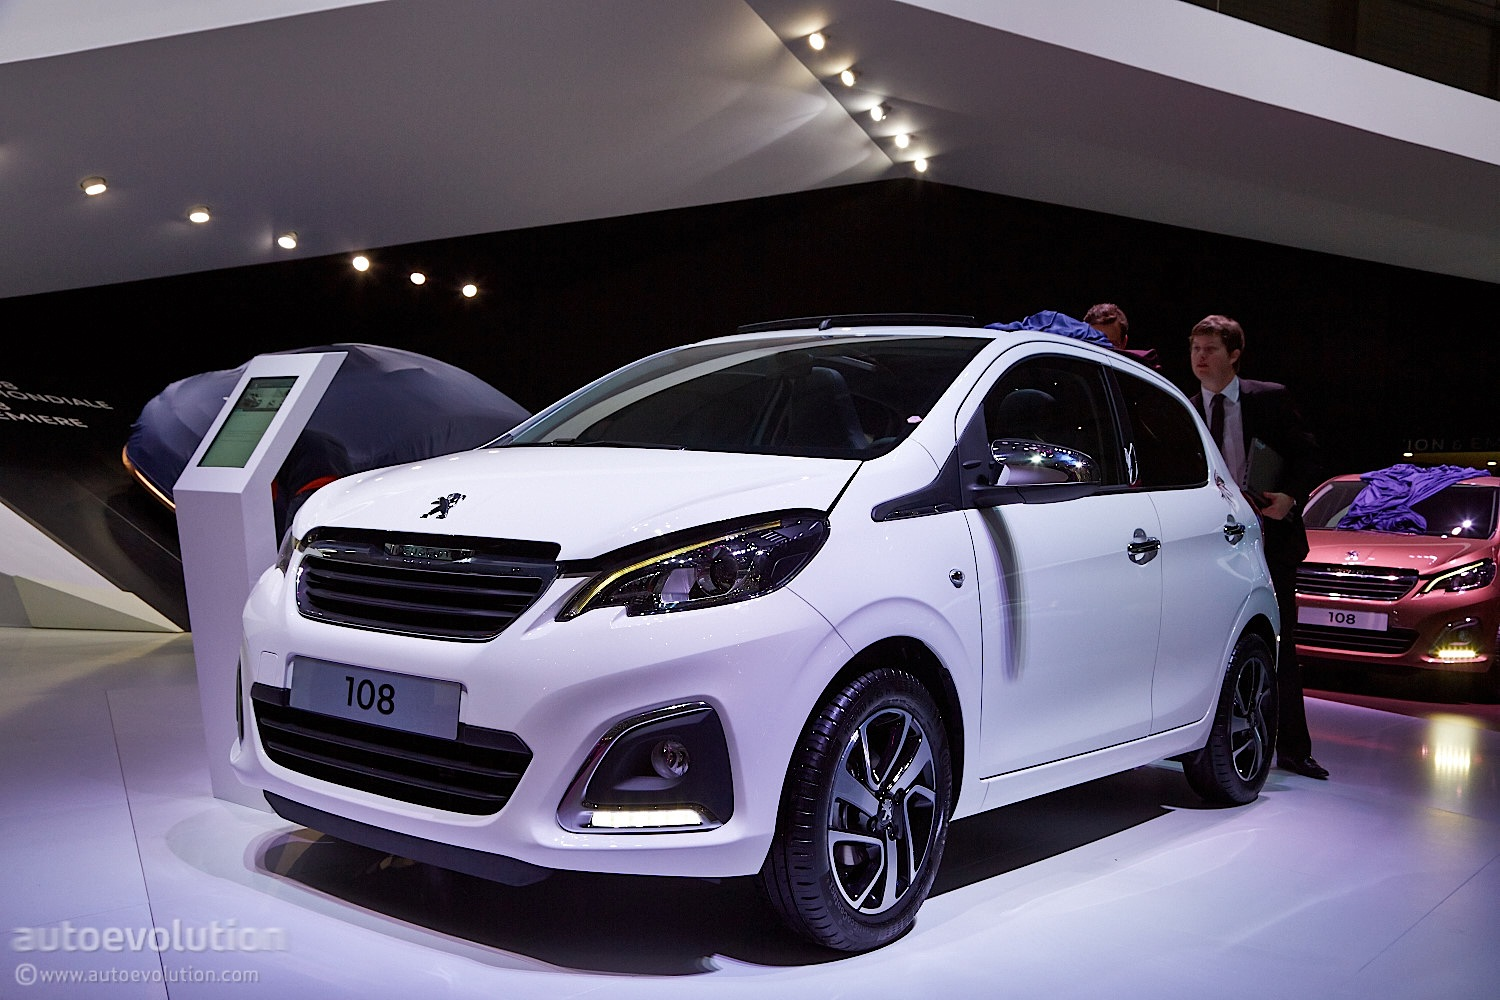 Jeep Suv 2015 >> Peugeot 108 Looks Like a Bigger Minicar with Premium ...